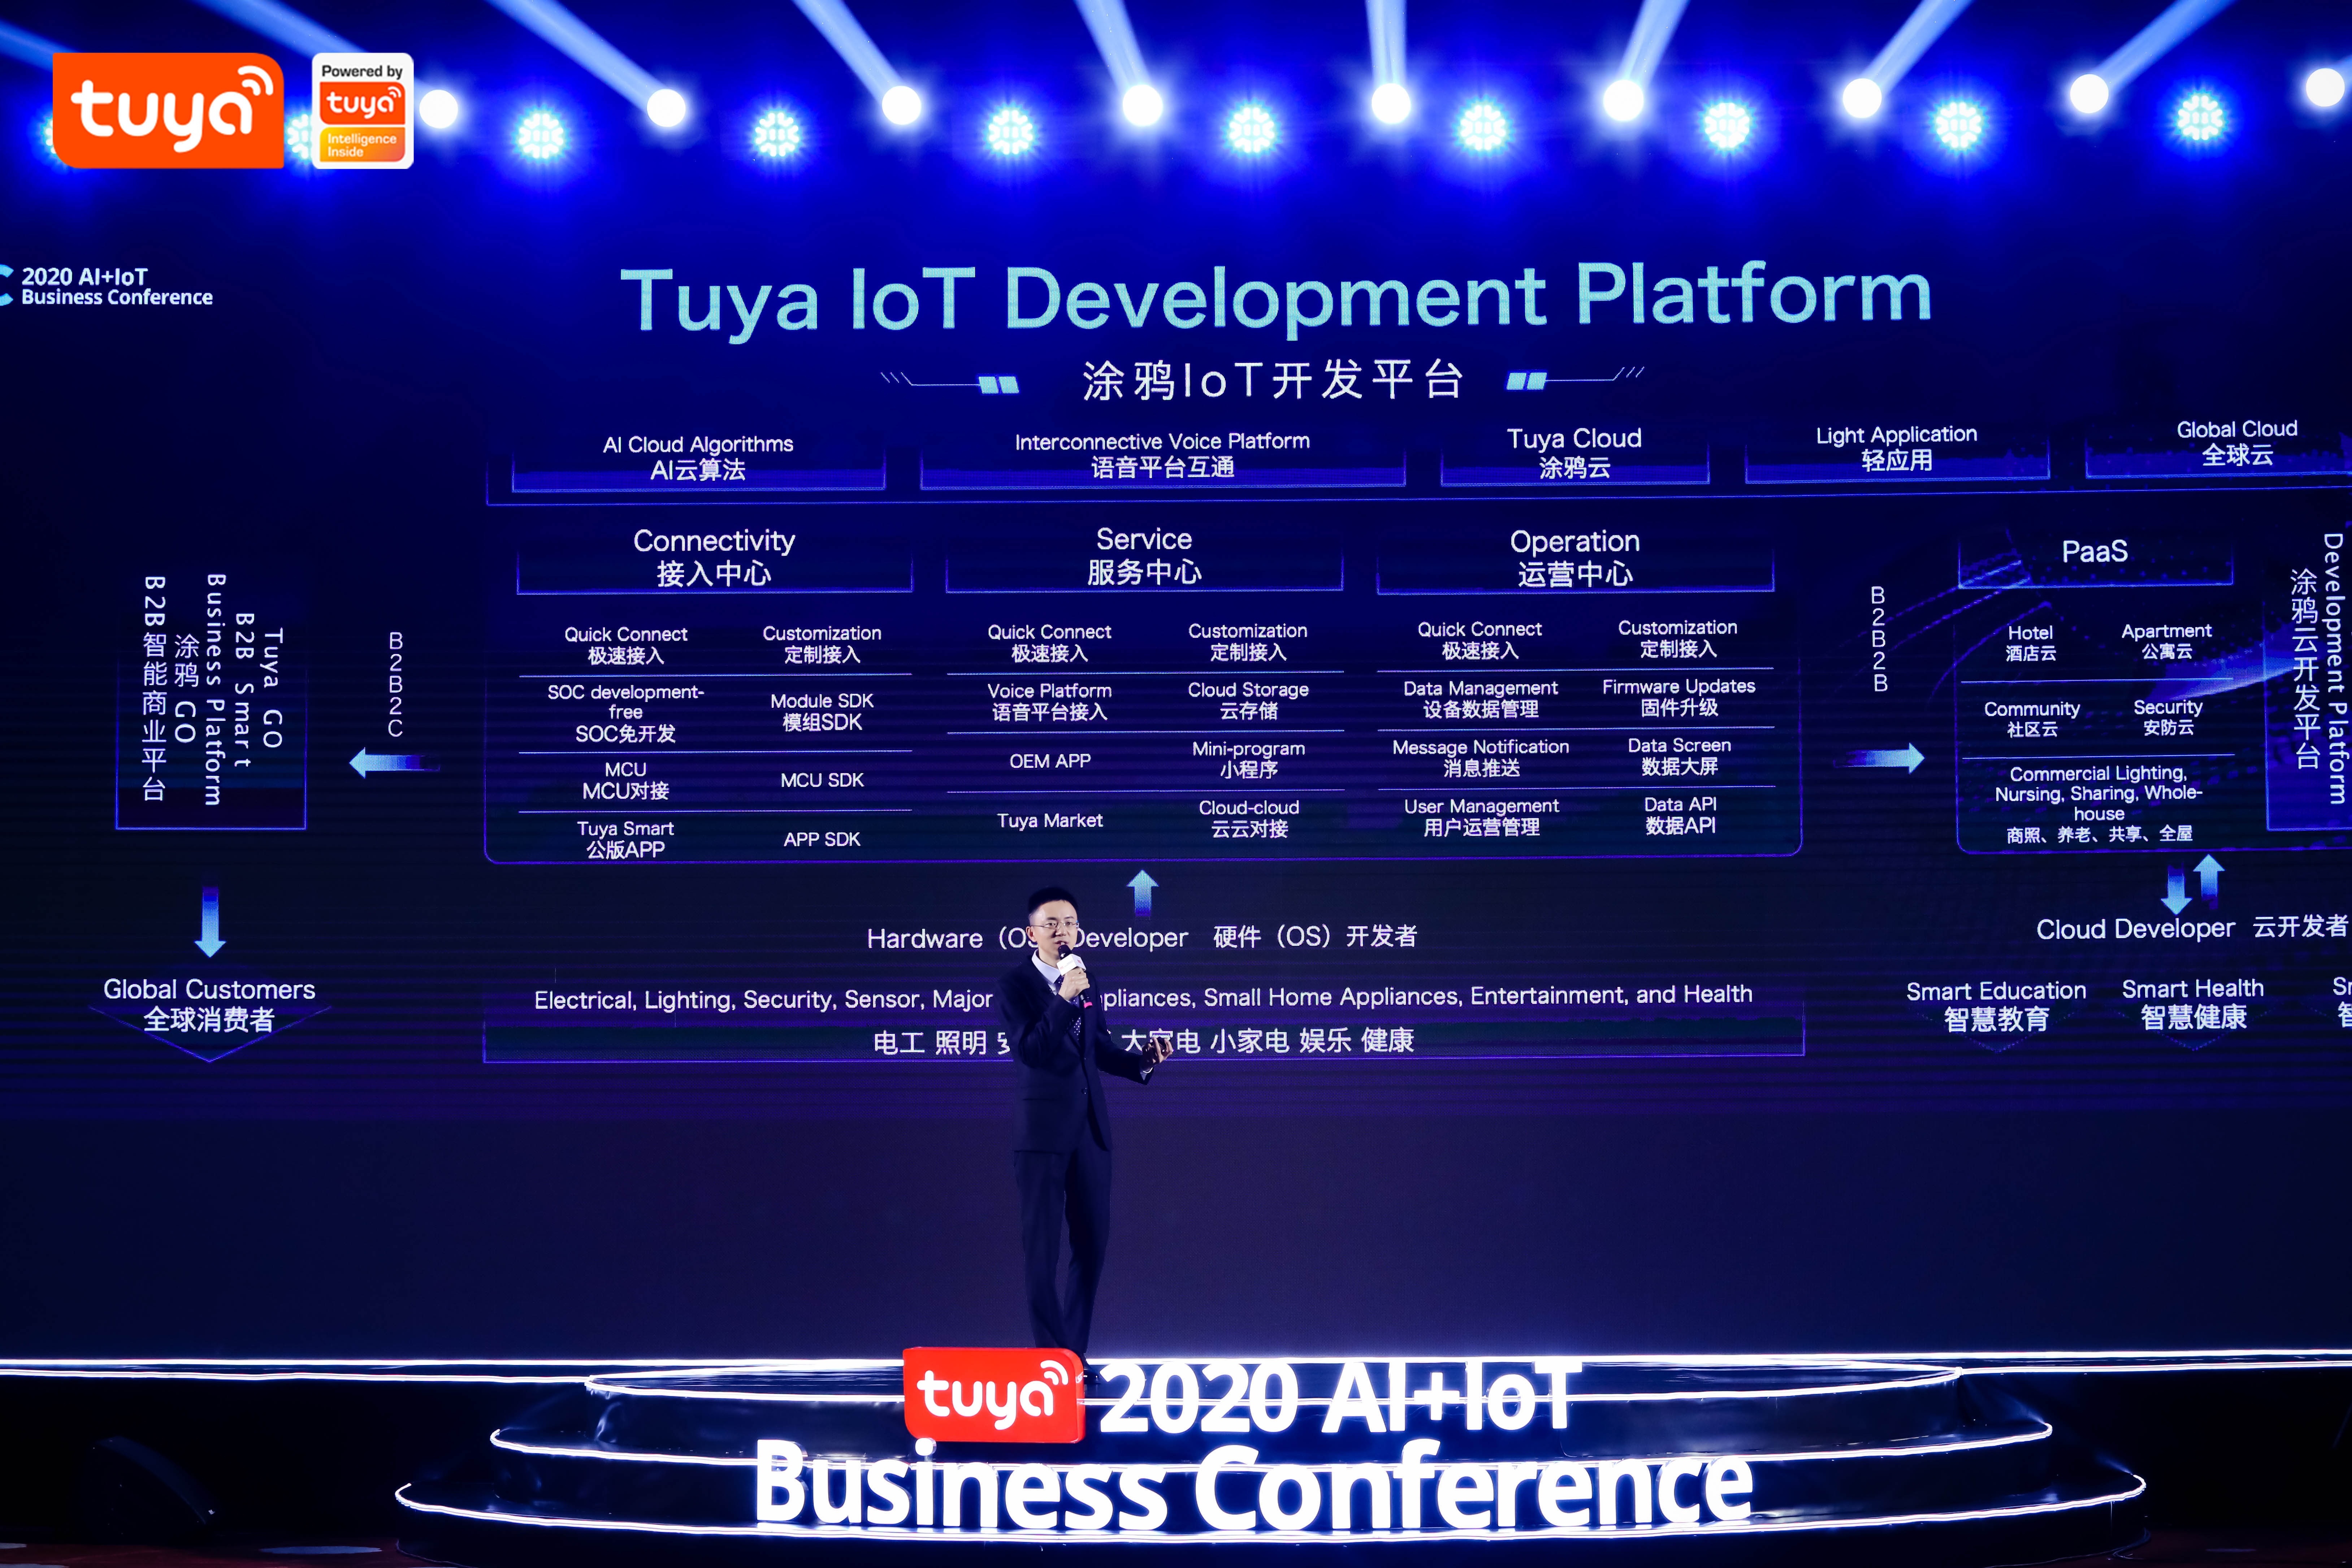 Leo Chen, Co-founder and President of Tuya Smart